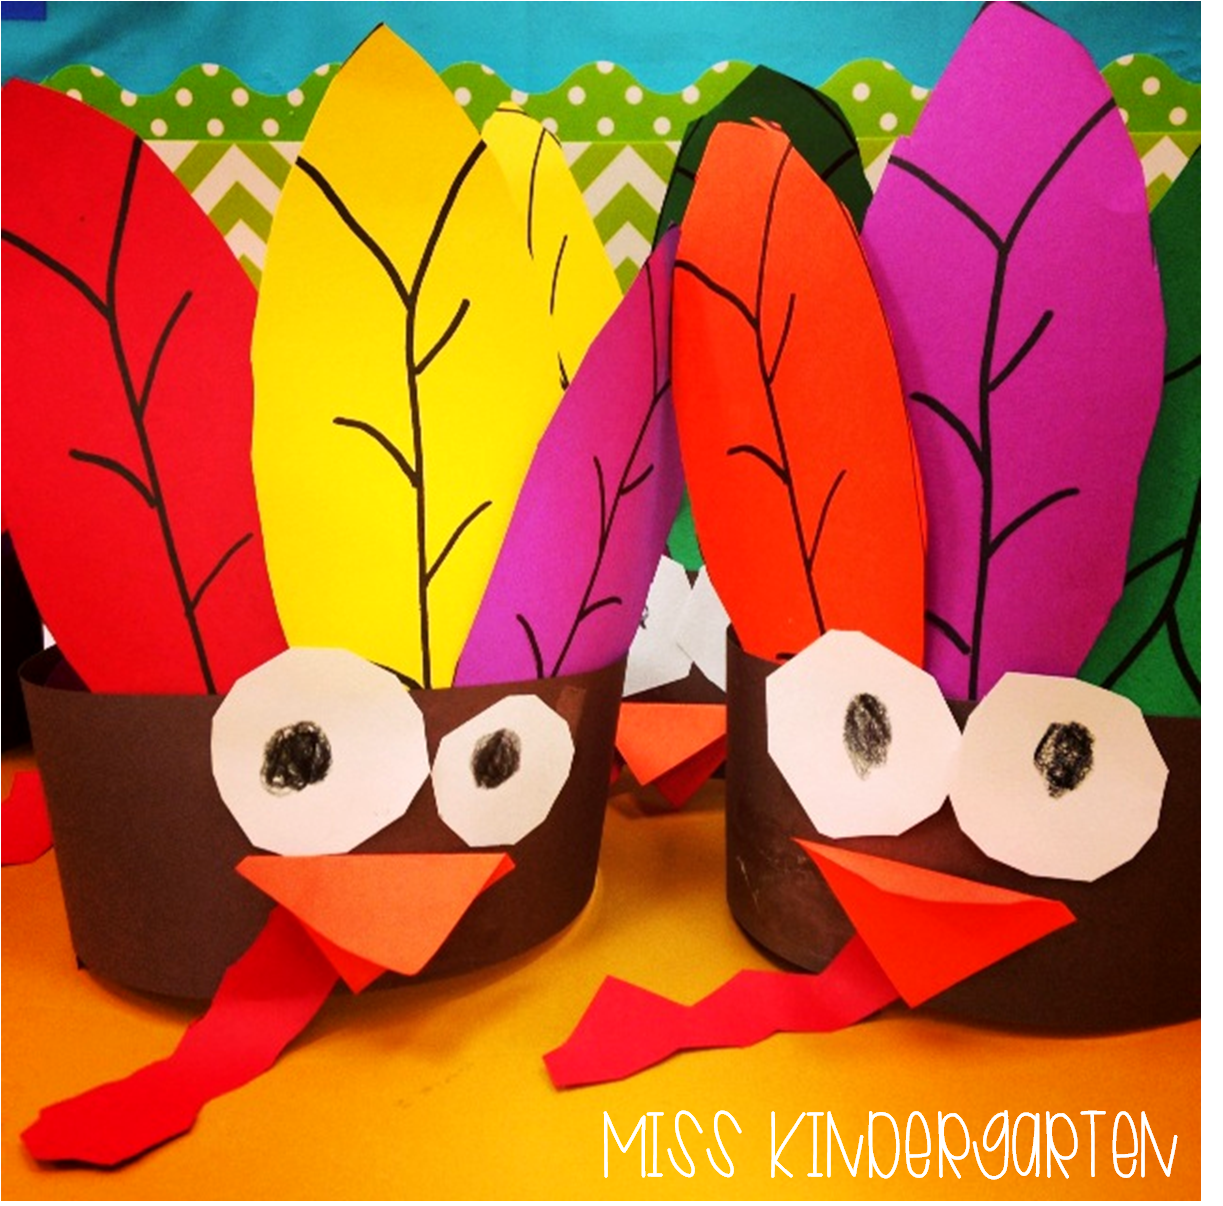 Black headbands for crafts - Gobble Gobble Turkey Headbands